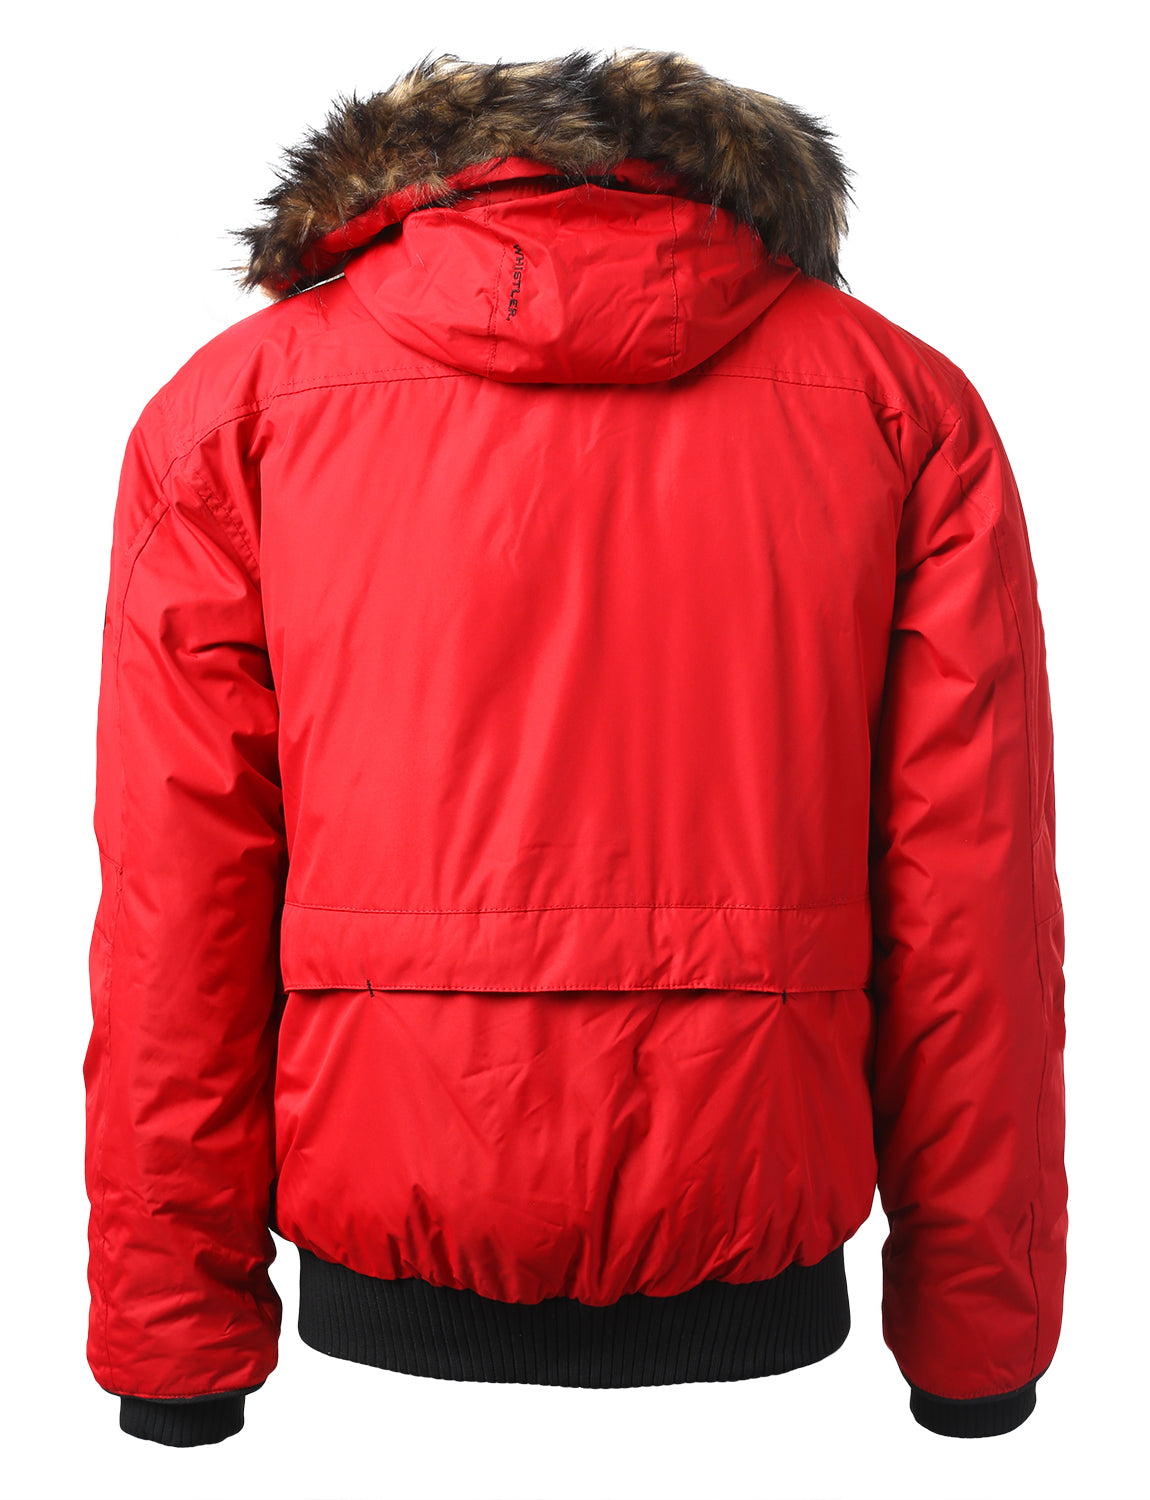 RED Appalachian Puffer Jacket w/ Faux Fur Hood - URBANCREWS